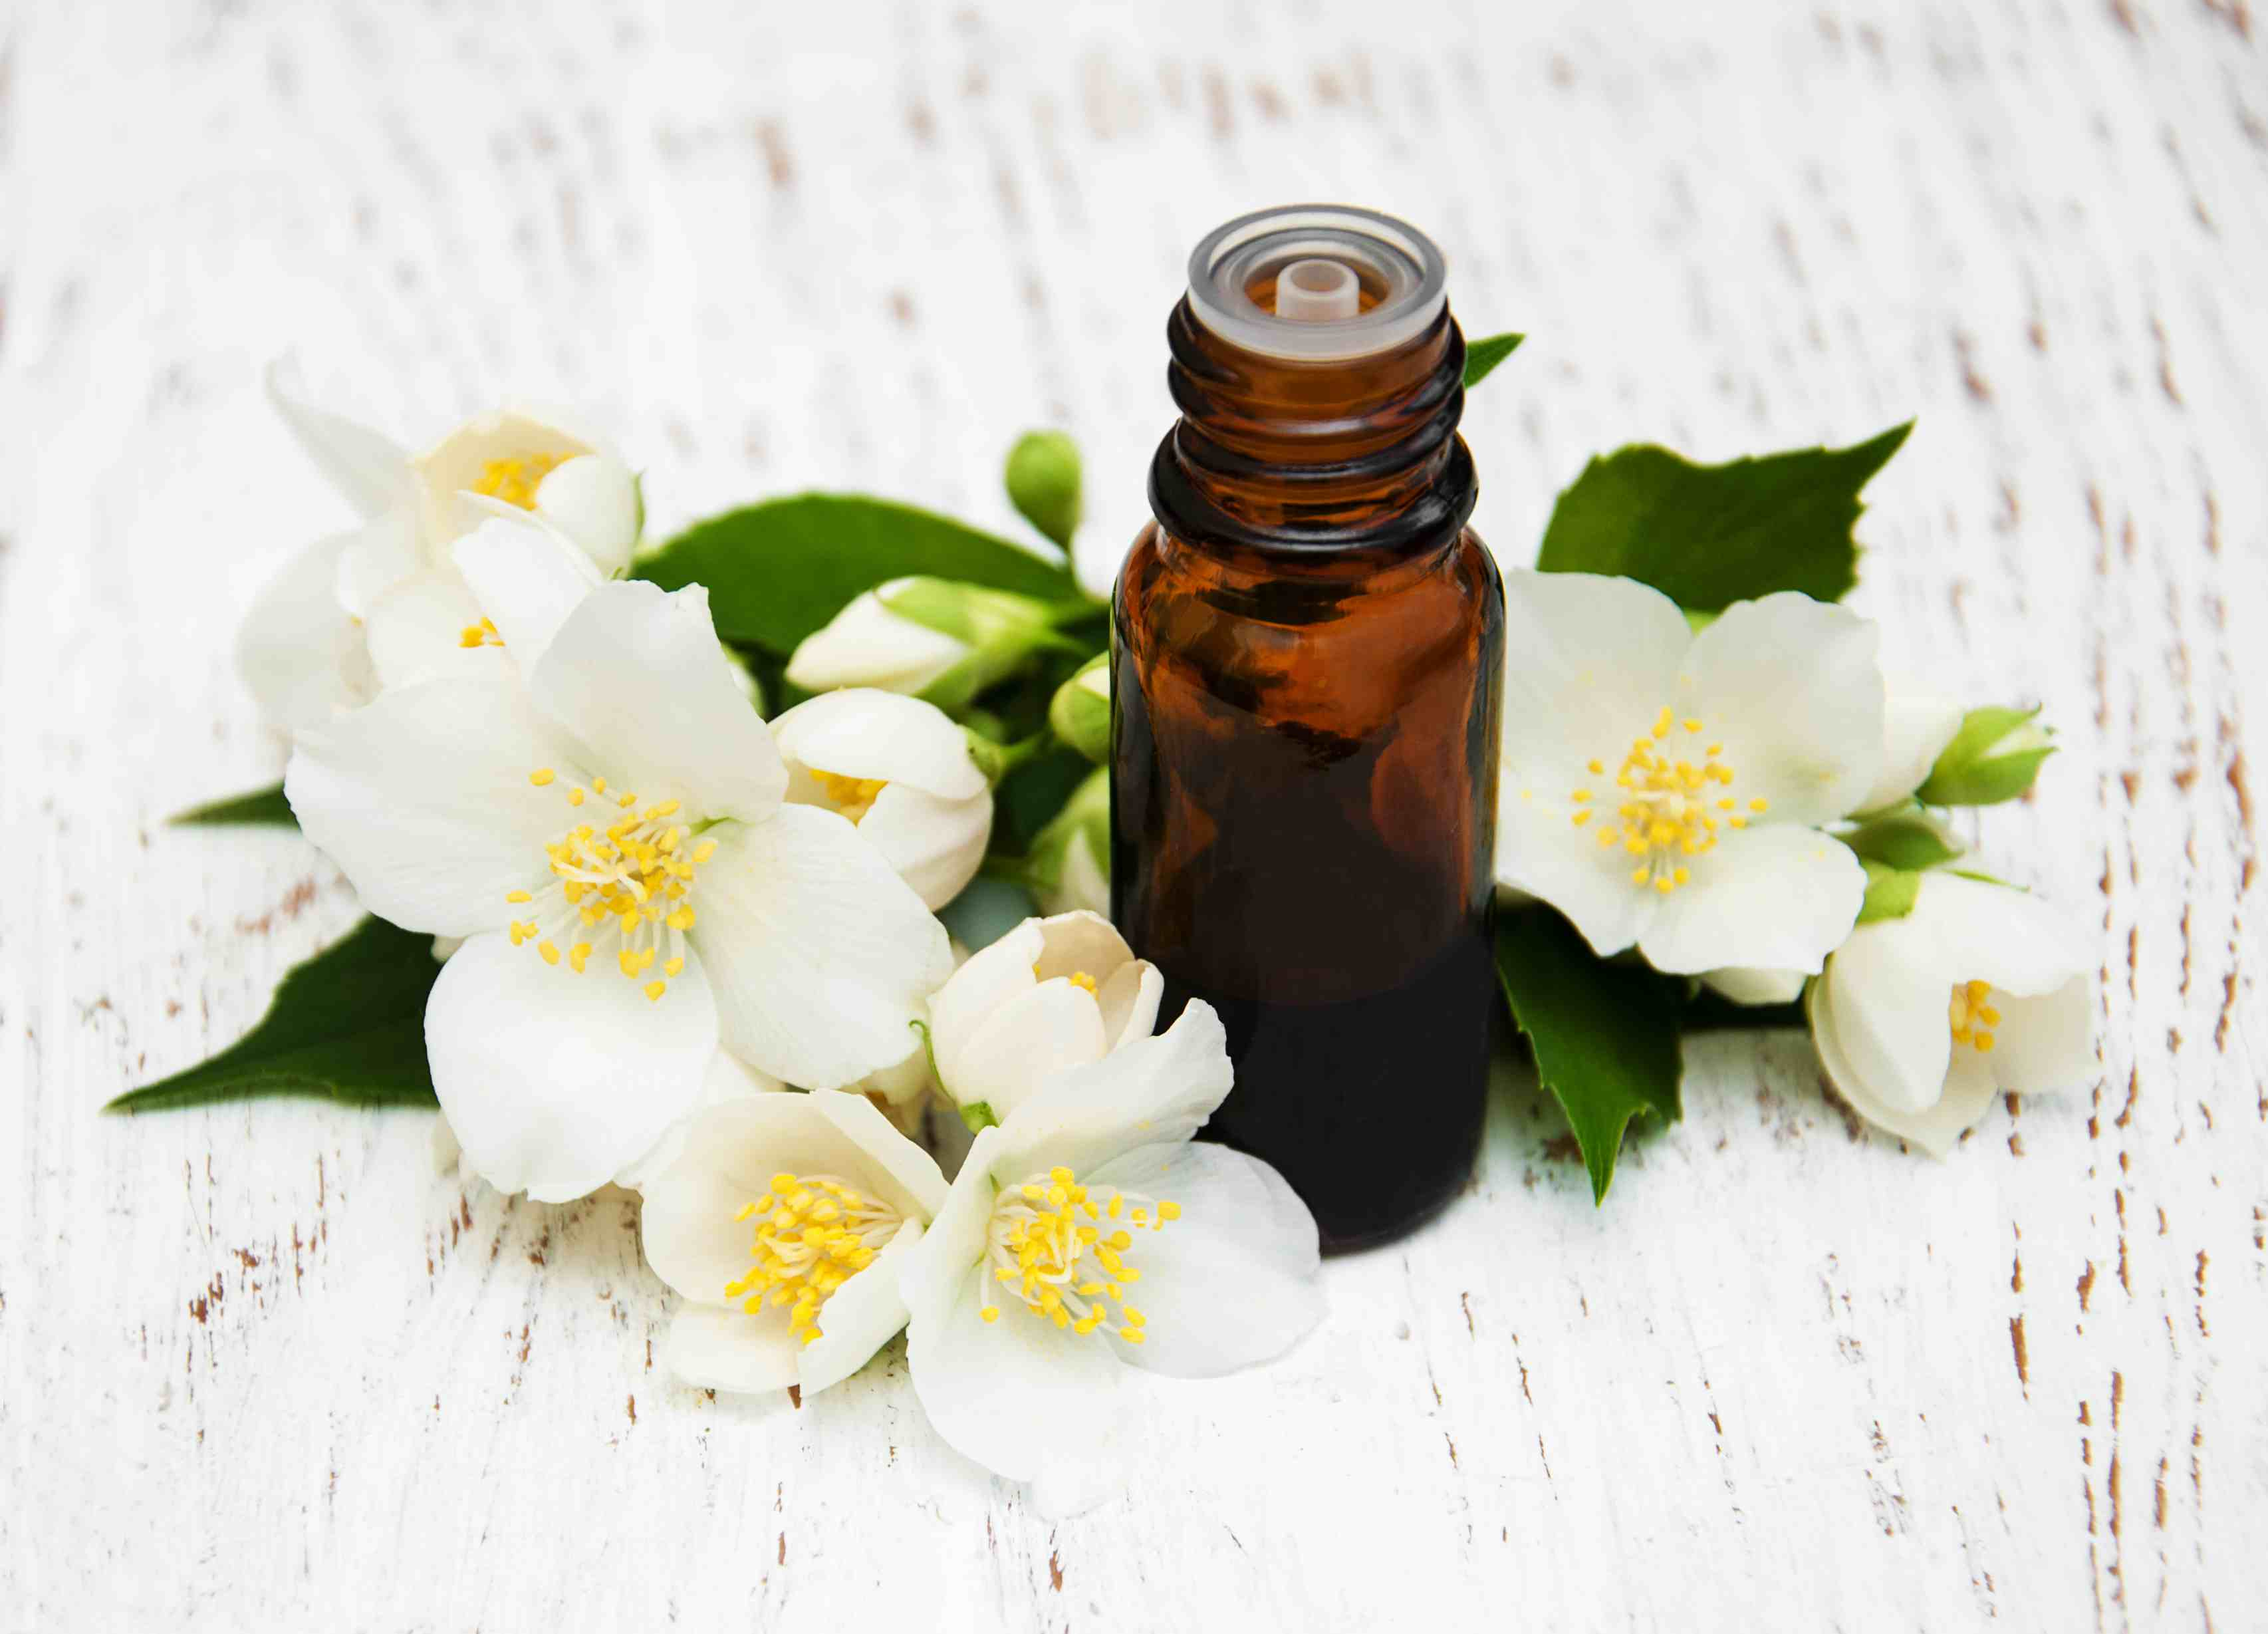 Jasmine essential oils by jasmine flowers